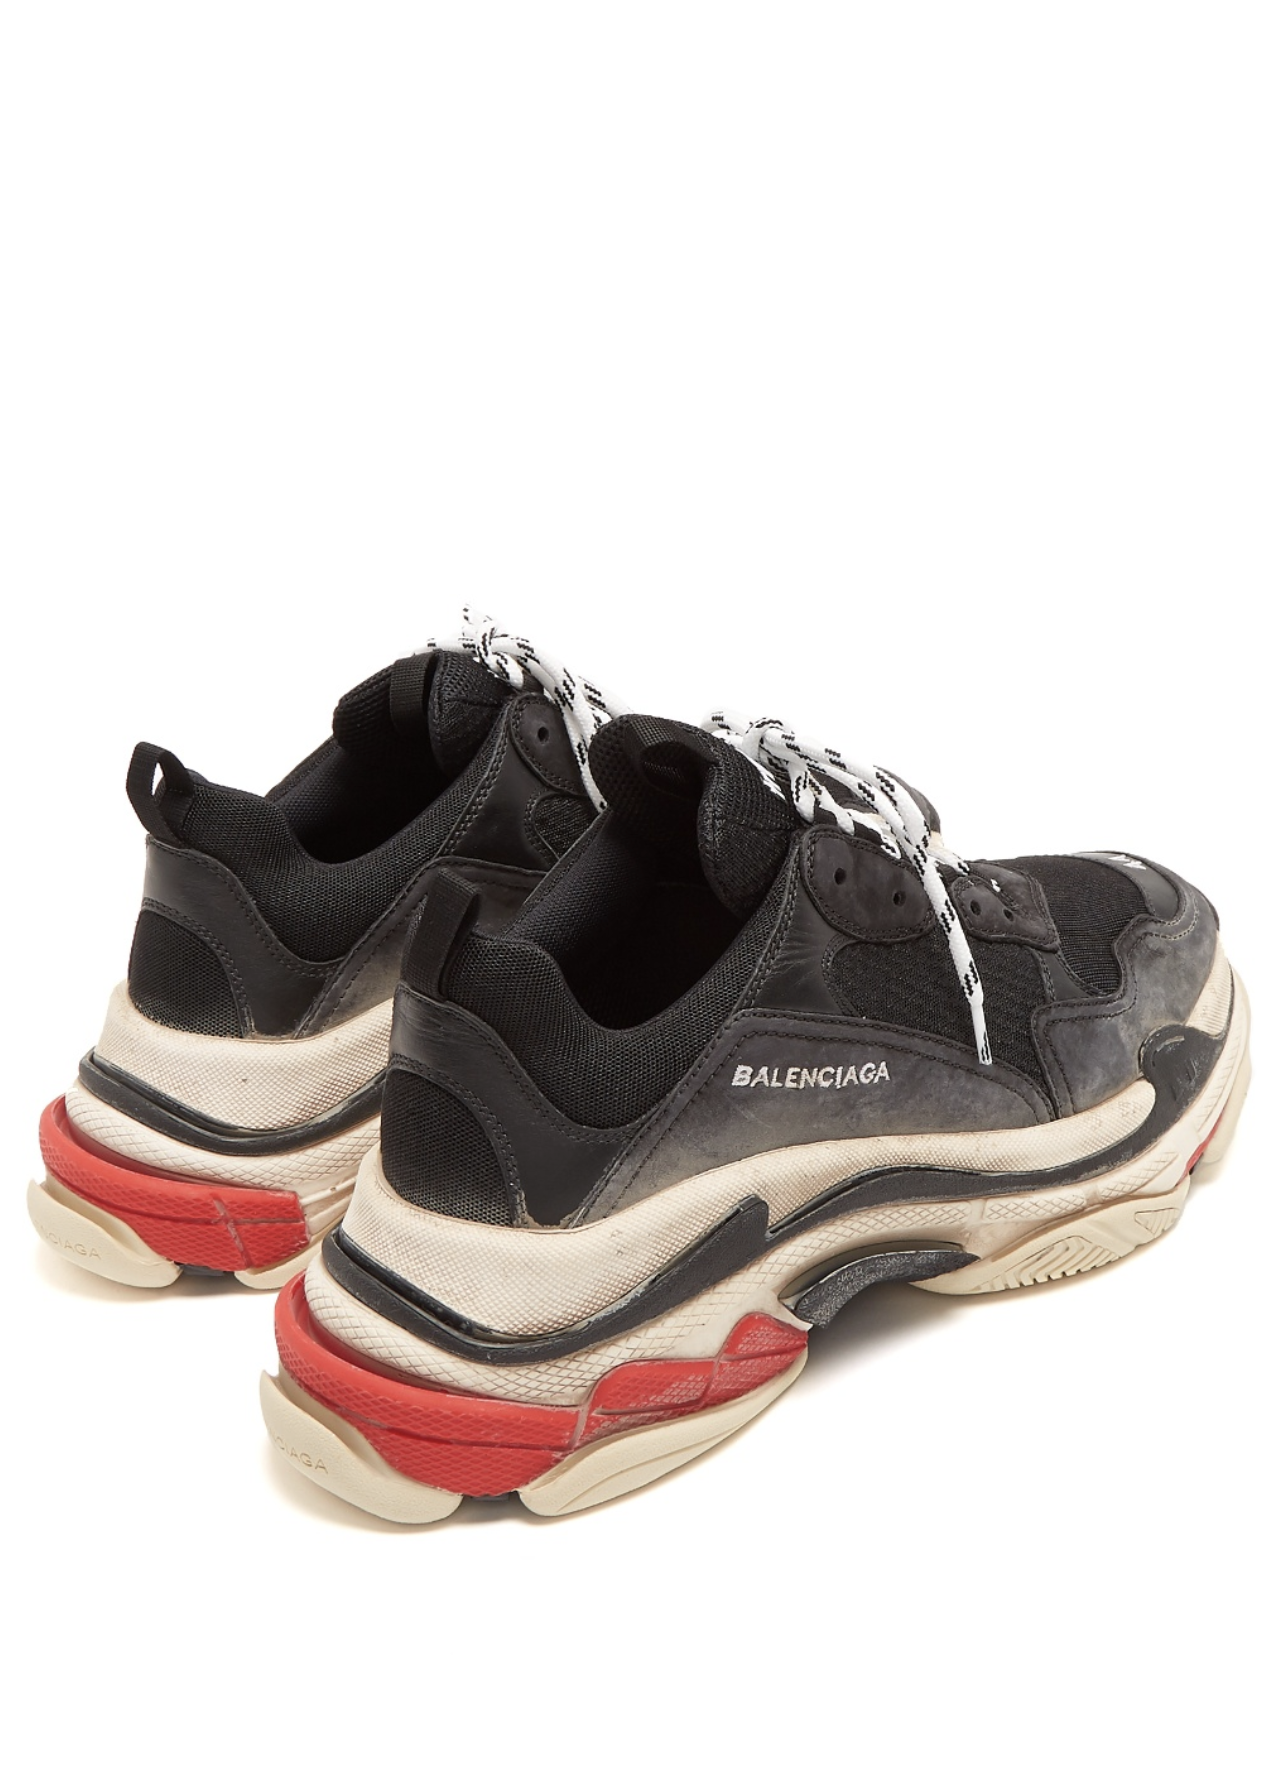 balenciaga triple s low top trainers from matches fashion men style fashion clothing. Black Bedroom Furniture Sets. Home Design Ideas